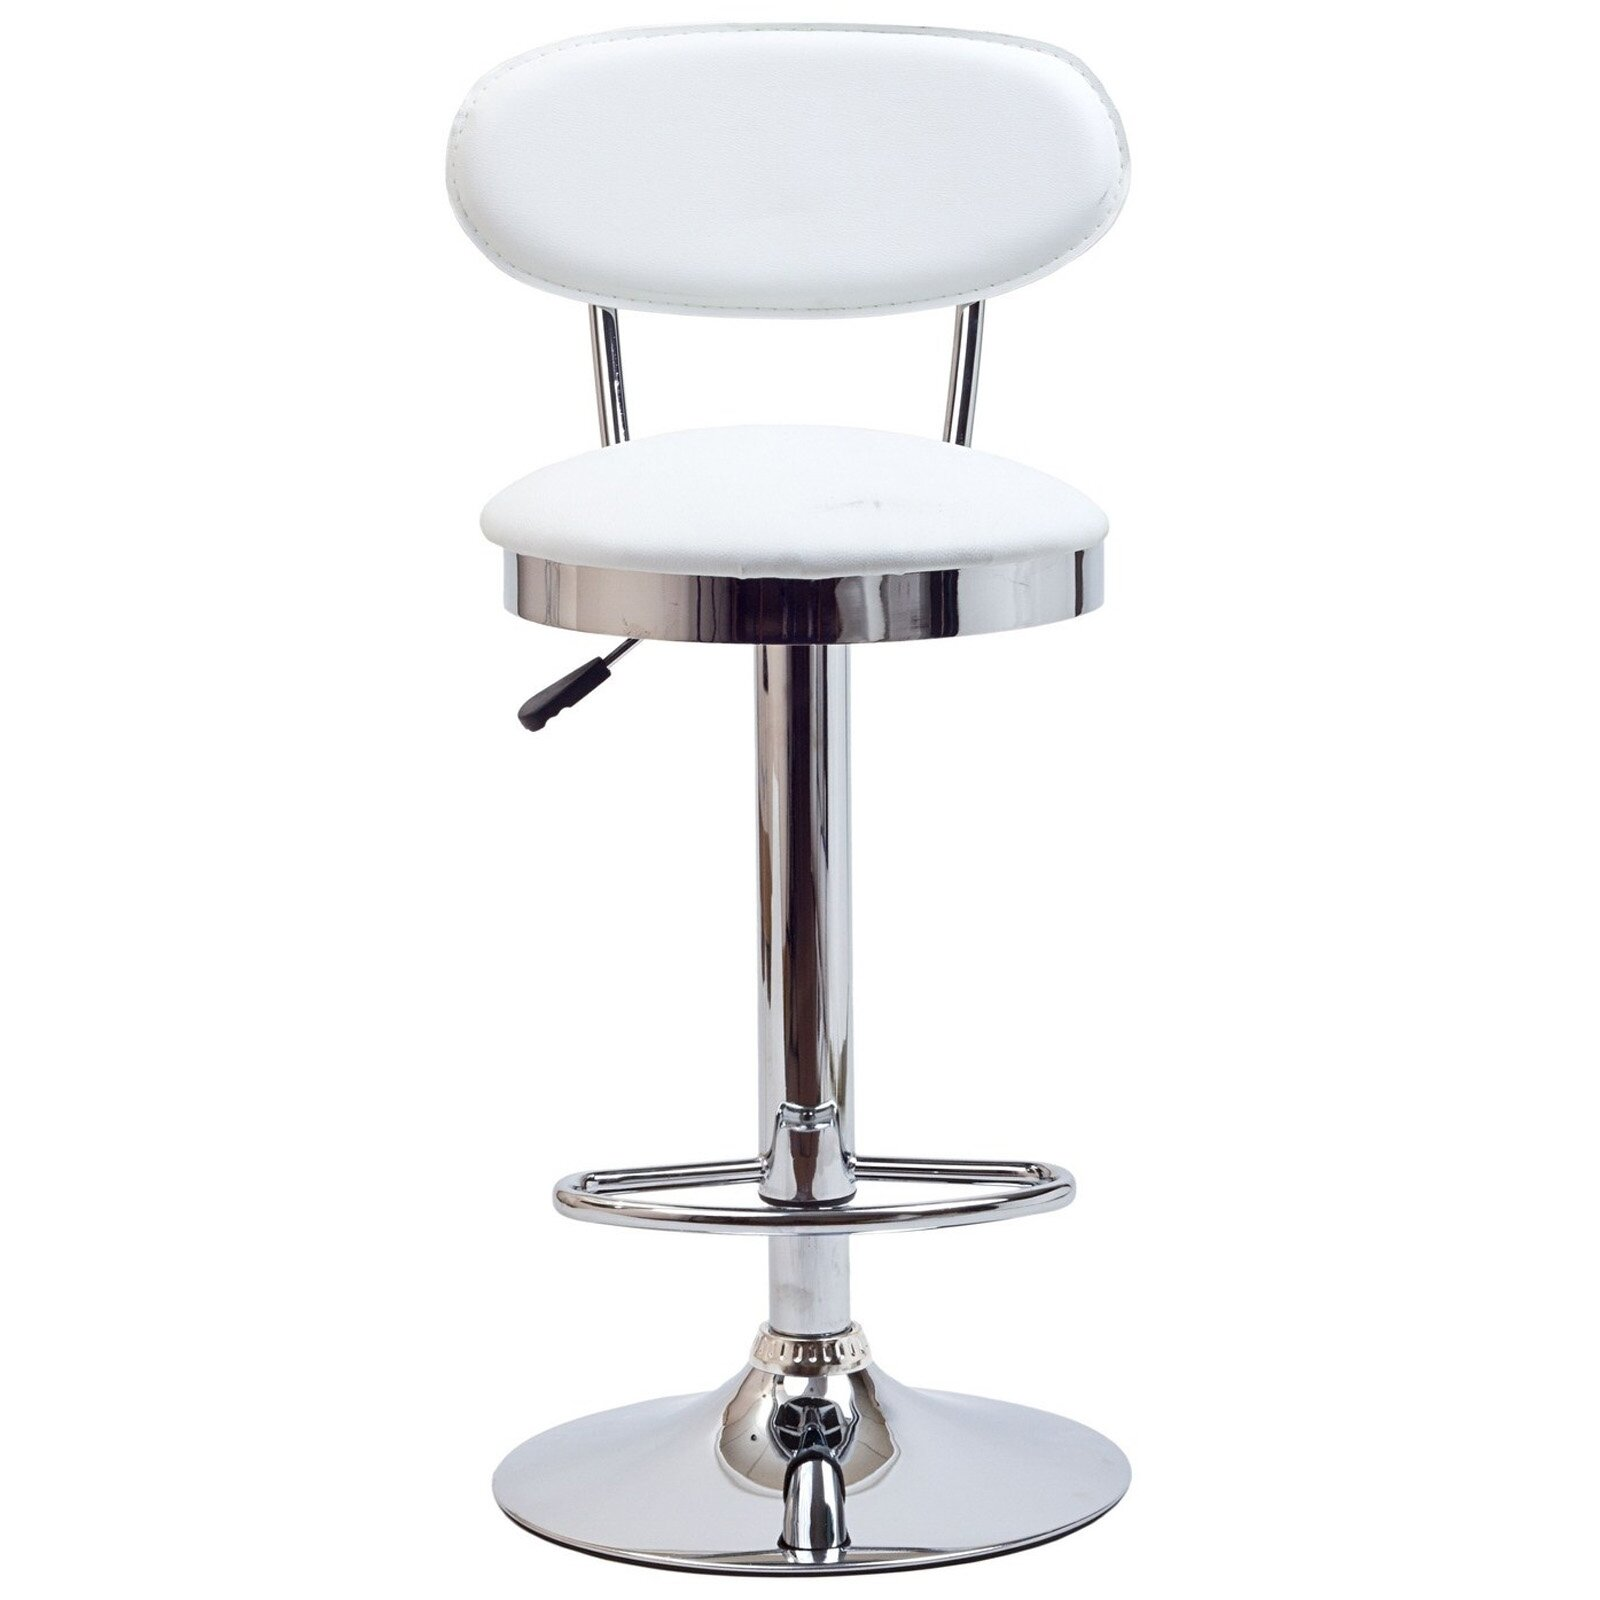 Vintage Bar Stool Adjustable Seat Height Counter Top Chair: Modway Retro Adjustable Height Swivel Bar Stool & Reviews